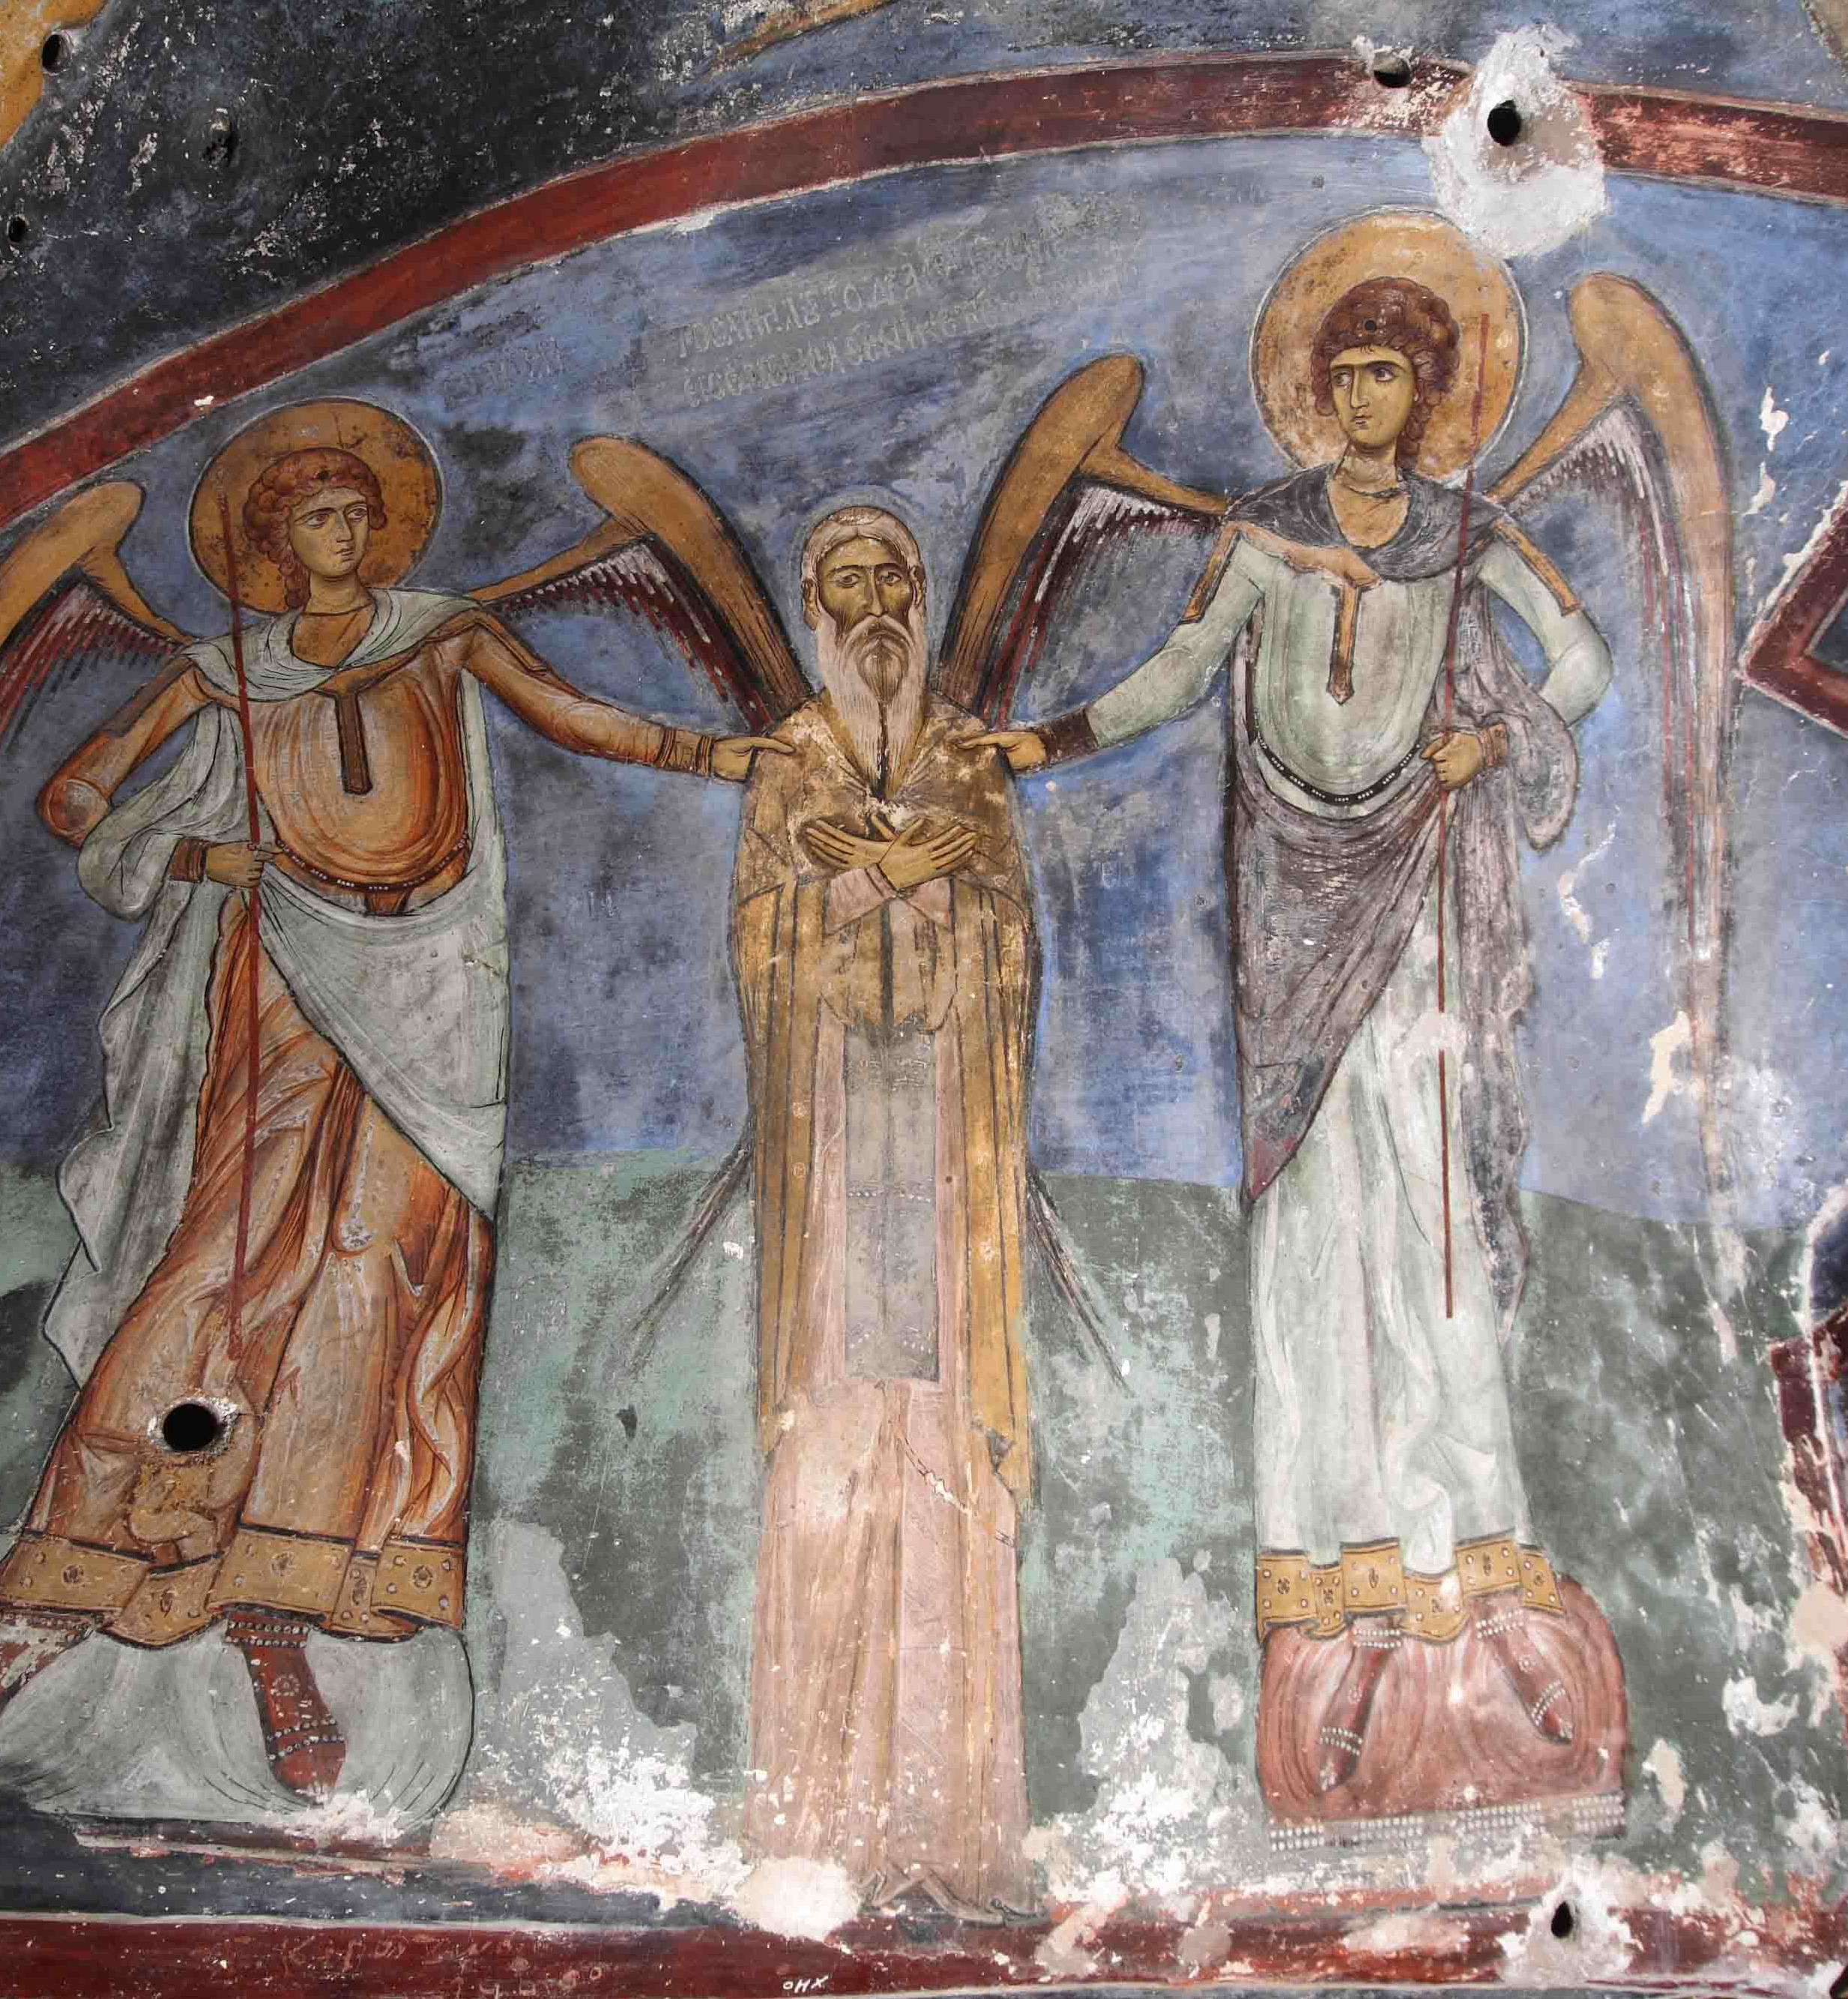 Fig. 2: Depiction of St. Neophytos flaked by the archangels Michael and Gabriel (Koukoulli and Fischer 2011–2012)